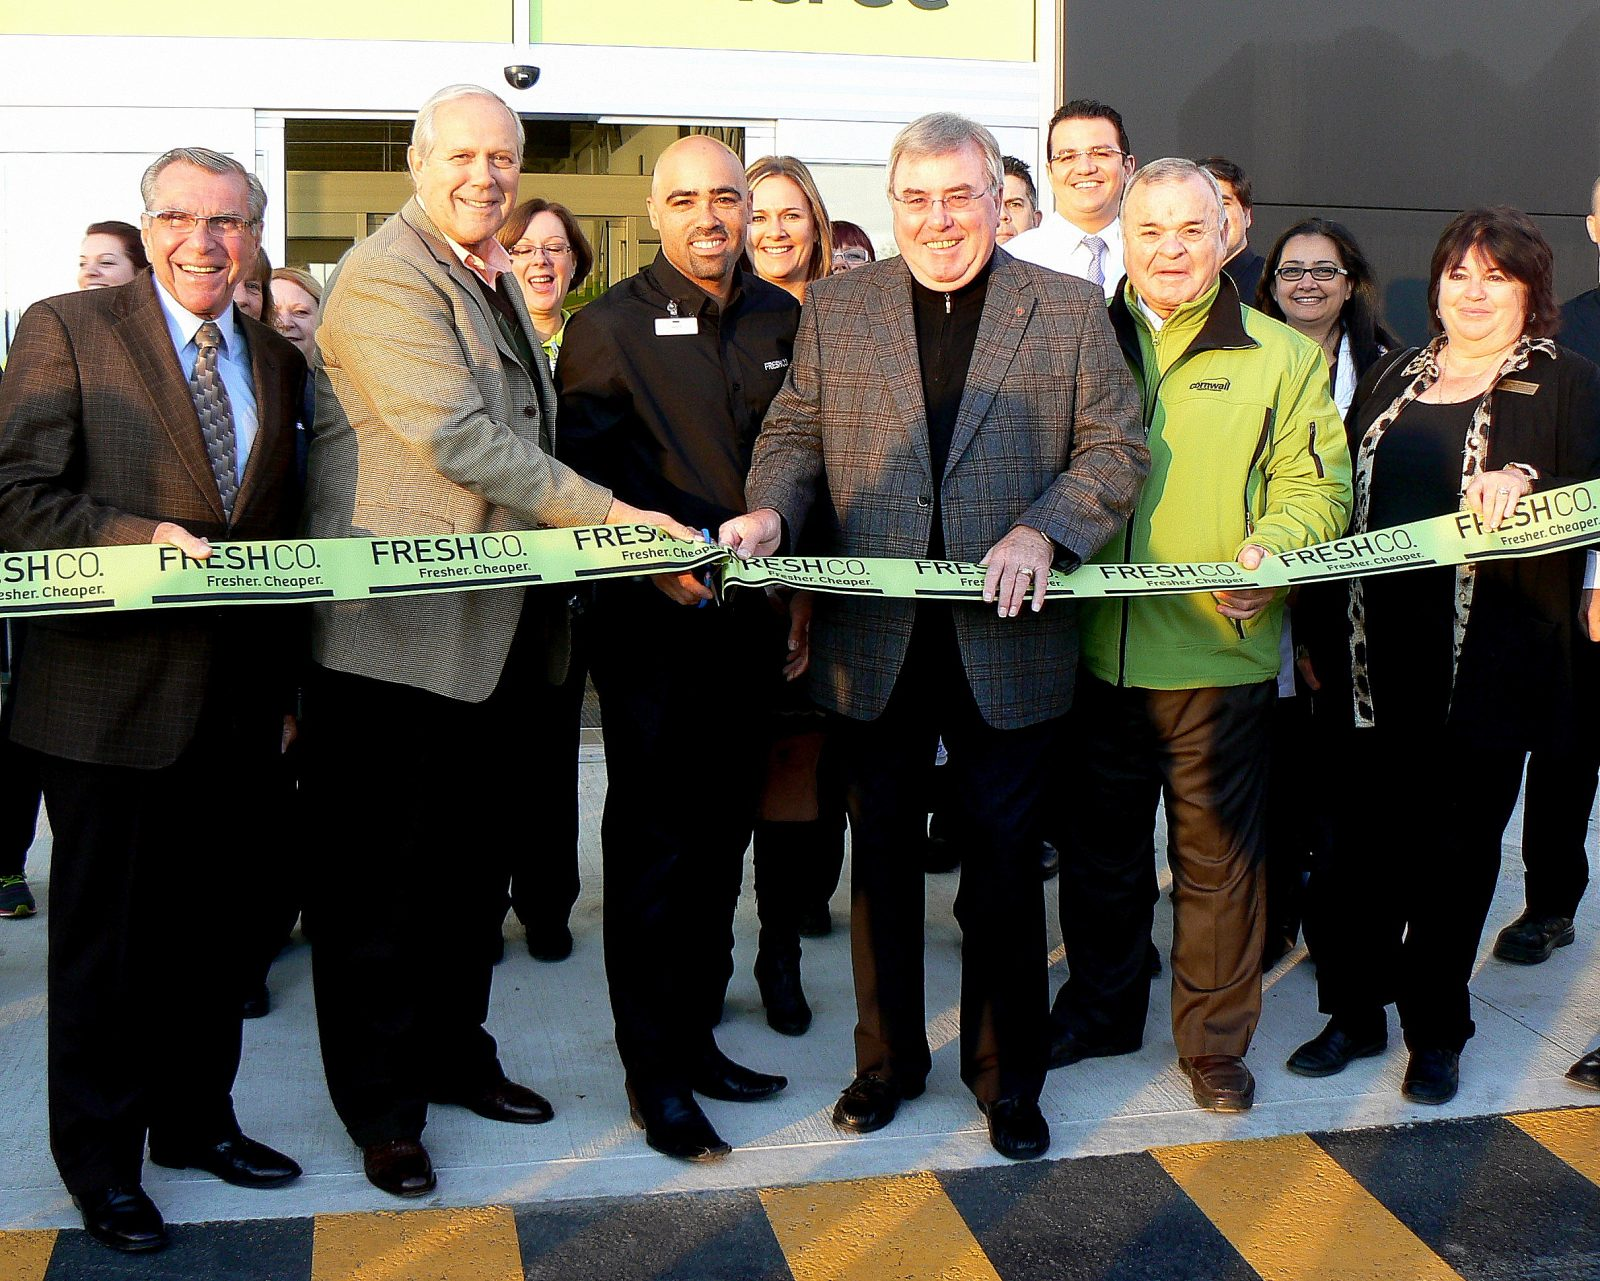 New Cornwall FreshCo officially opens its doors